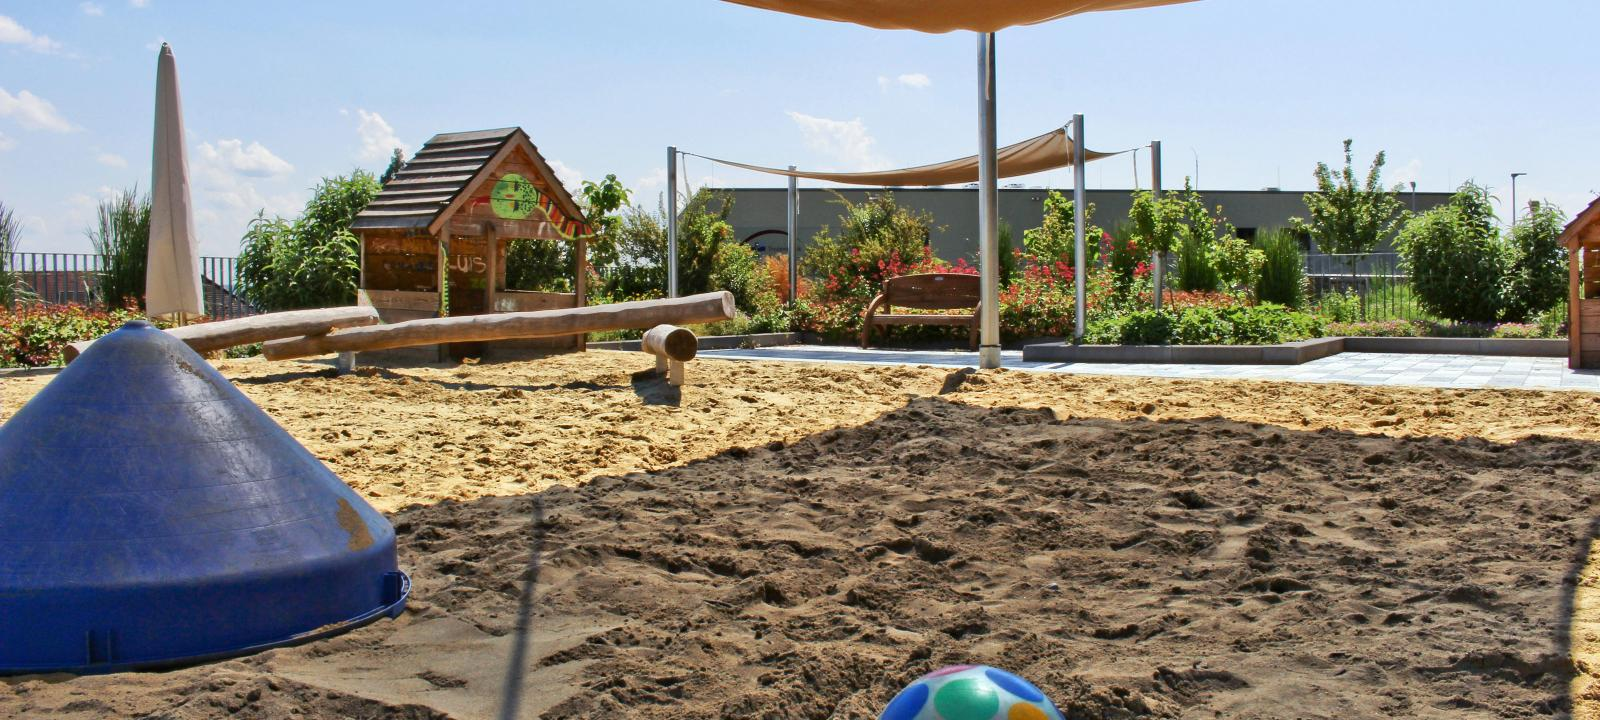 Playground with sand on a roof